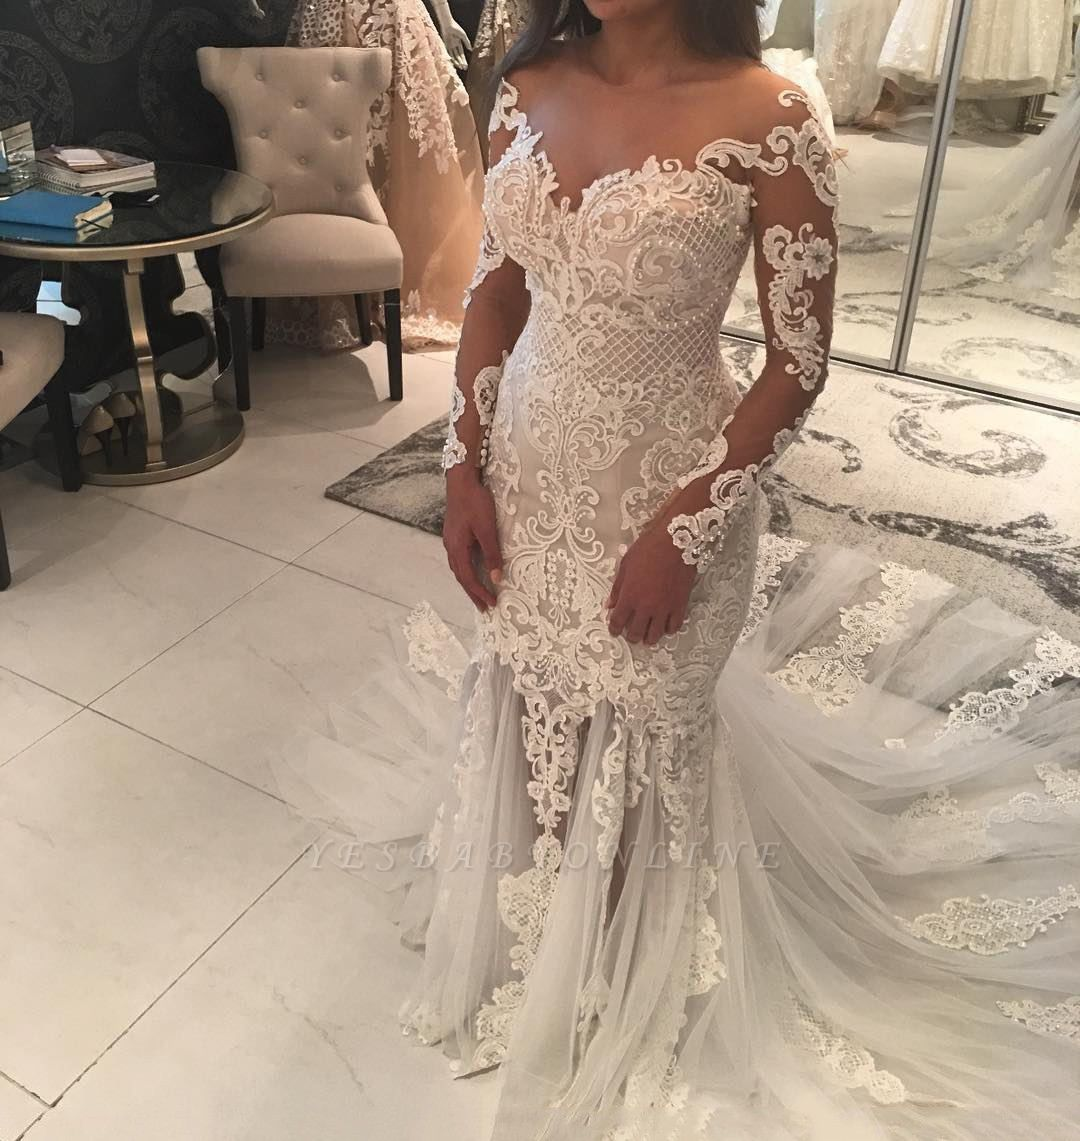 Sparkly Mermaid Long Sleeves Wedding Dresses Off The Shoulder V Neck Appliques Bridal Gowns Expensive Wedding Dress Sheer Wedding Dress Long Sleeve Mermaid Wedding Dress [ 1141 x 1080 Pixel ]